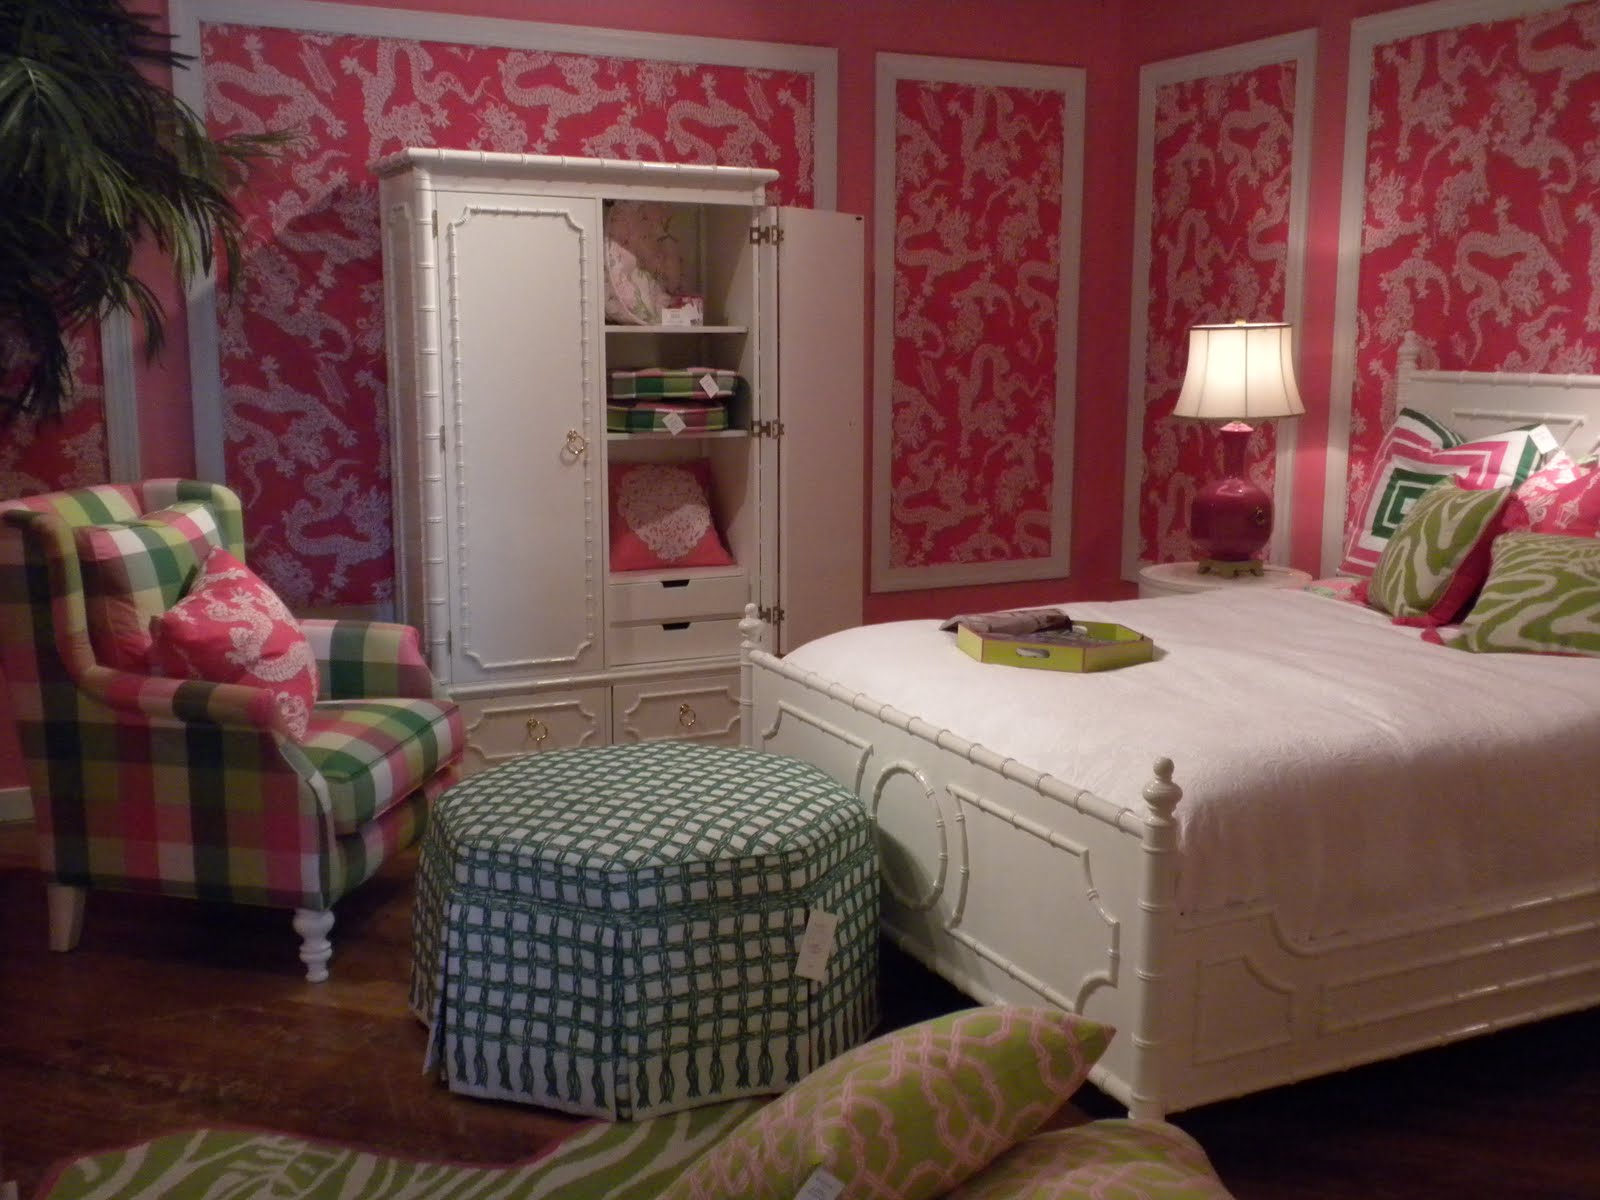 Check Out Other Gallery Of I Will Always Love Lilly The English Room 1600x1200